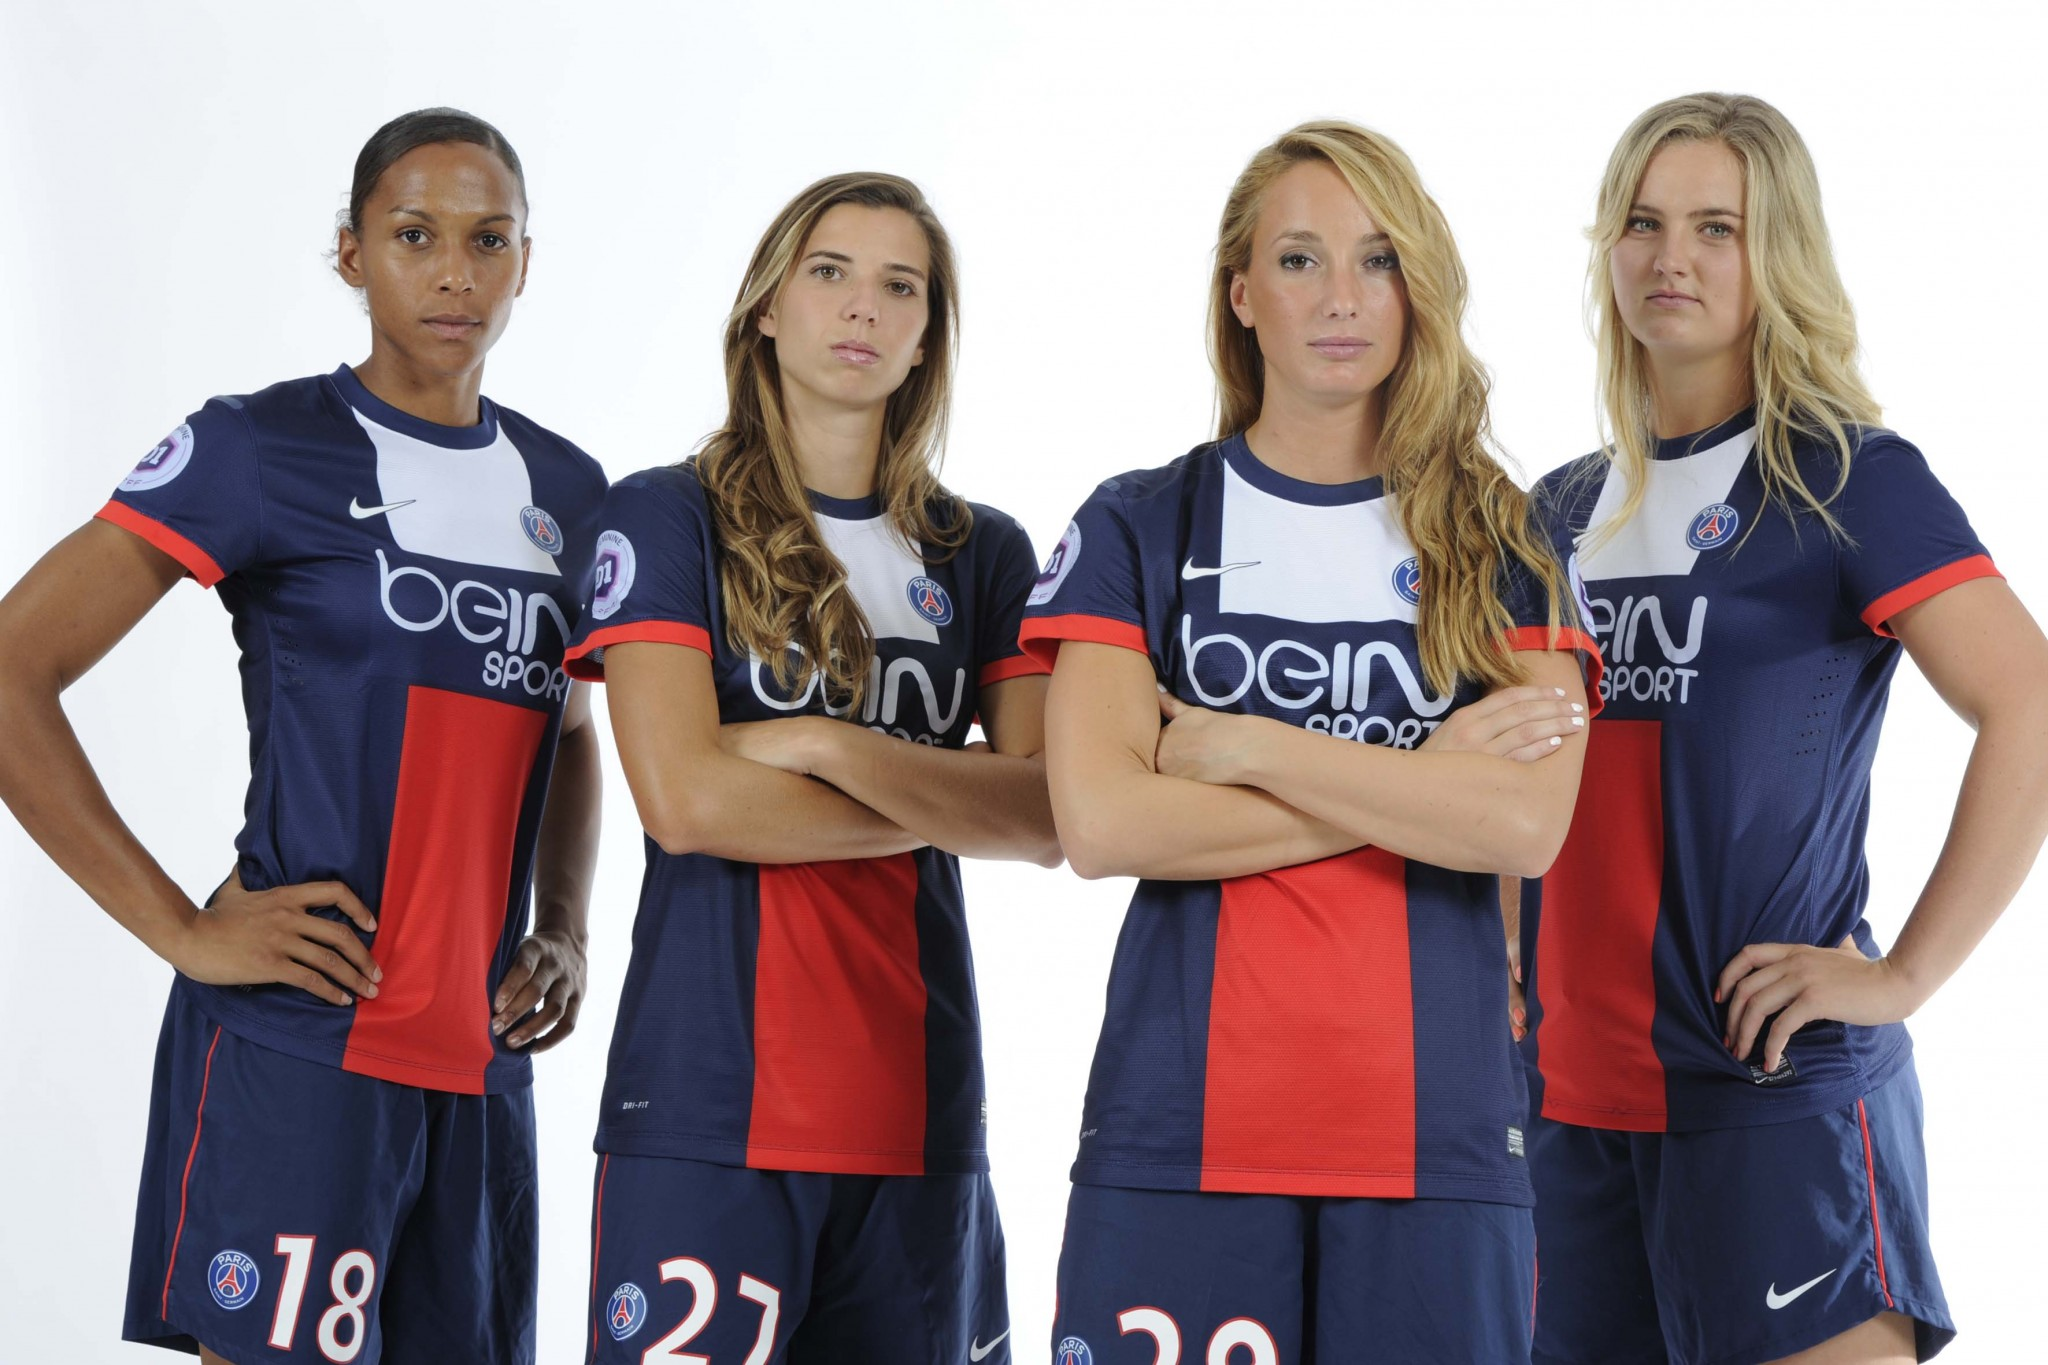 Studio PSG Féminines (Paris, FRANCE, 2013) Copyright ALAIN GADOFFRE